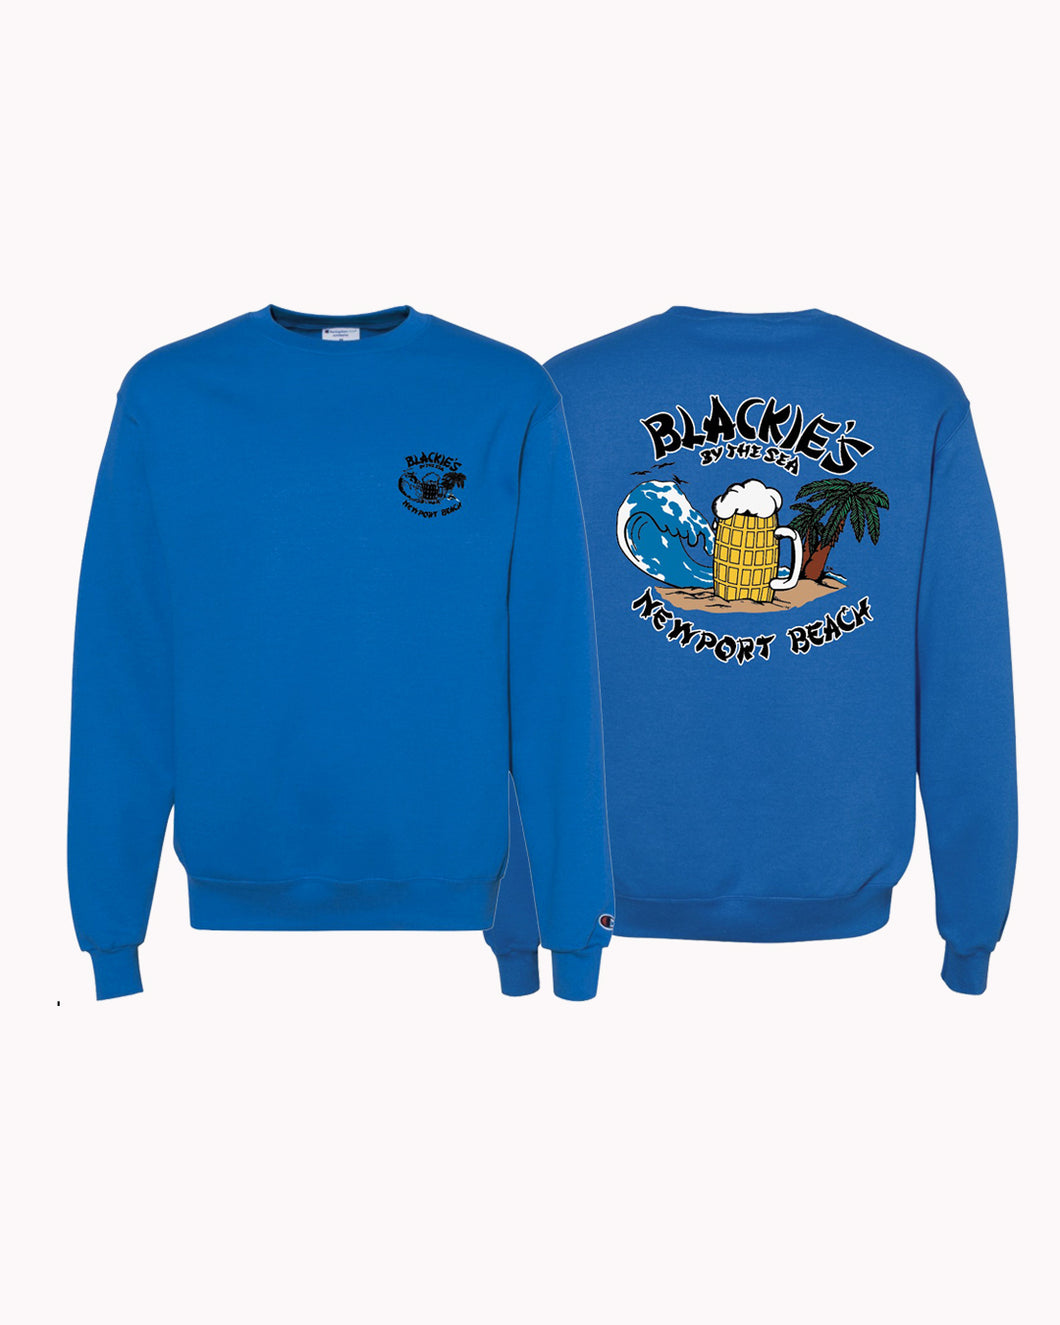 Blackie's Classic Crewneck Sweatshirt - Royal Blue